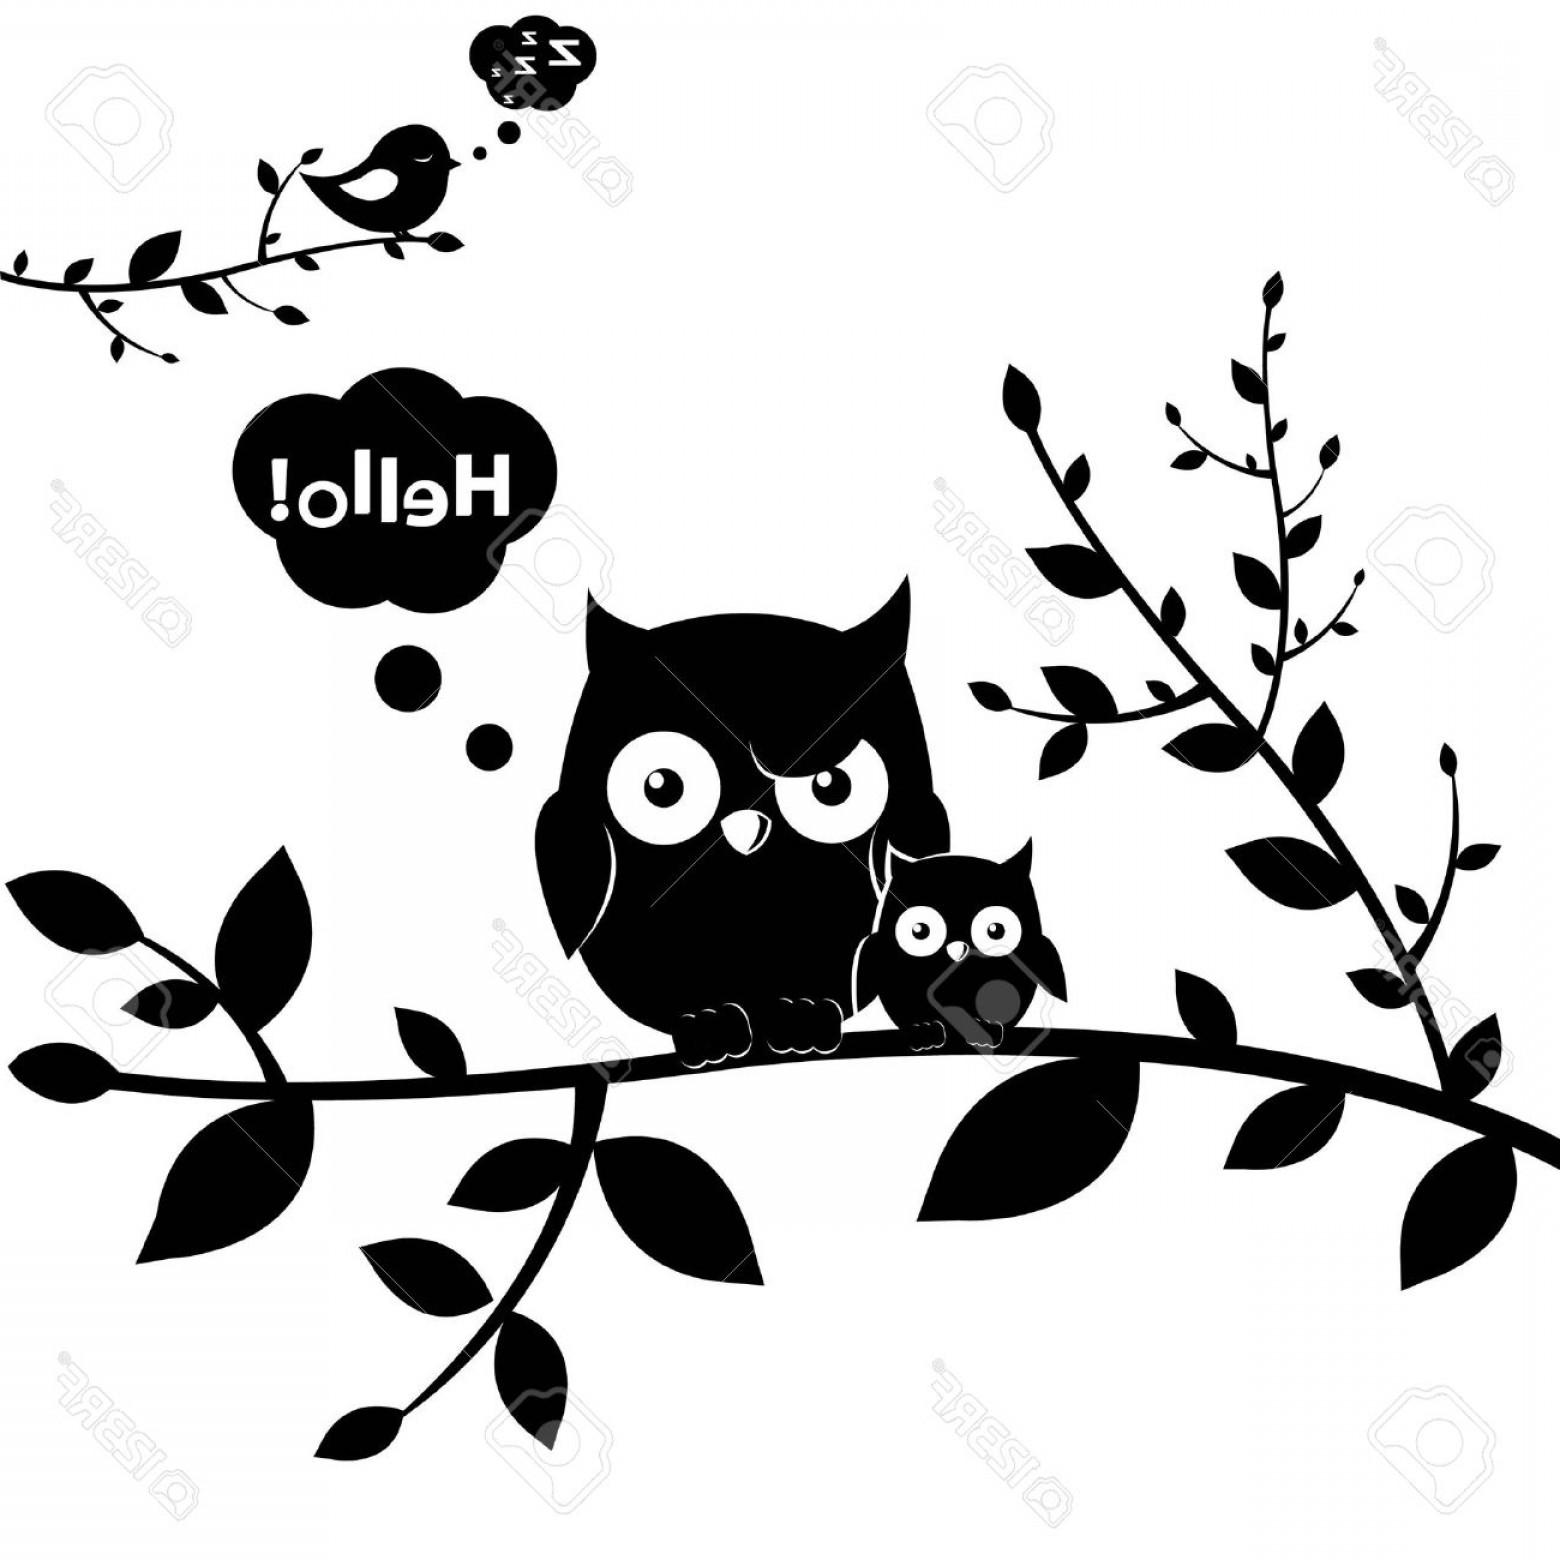 Owl Silhouette Vector Art: Photo Owls Isolated On White Background Vector Illustration